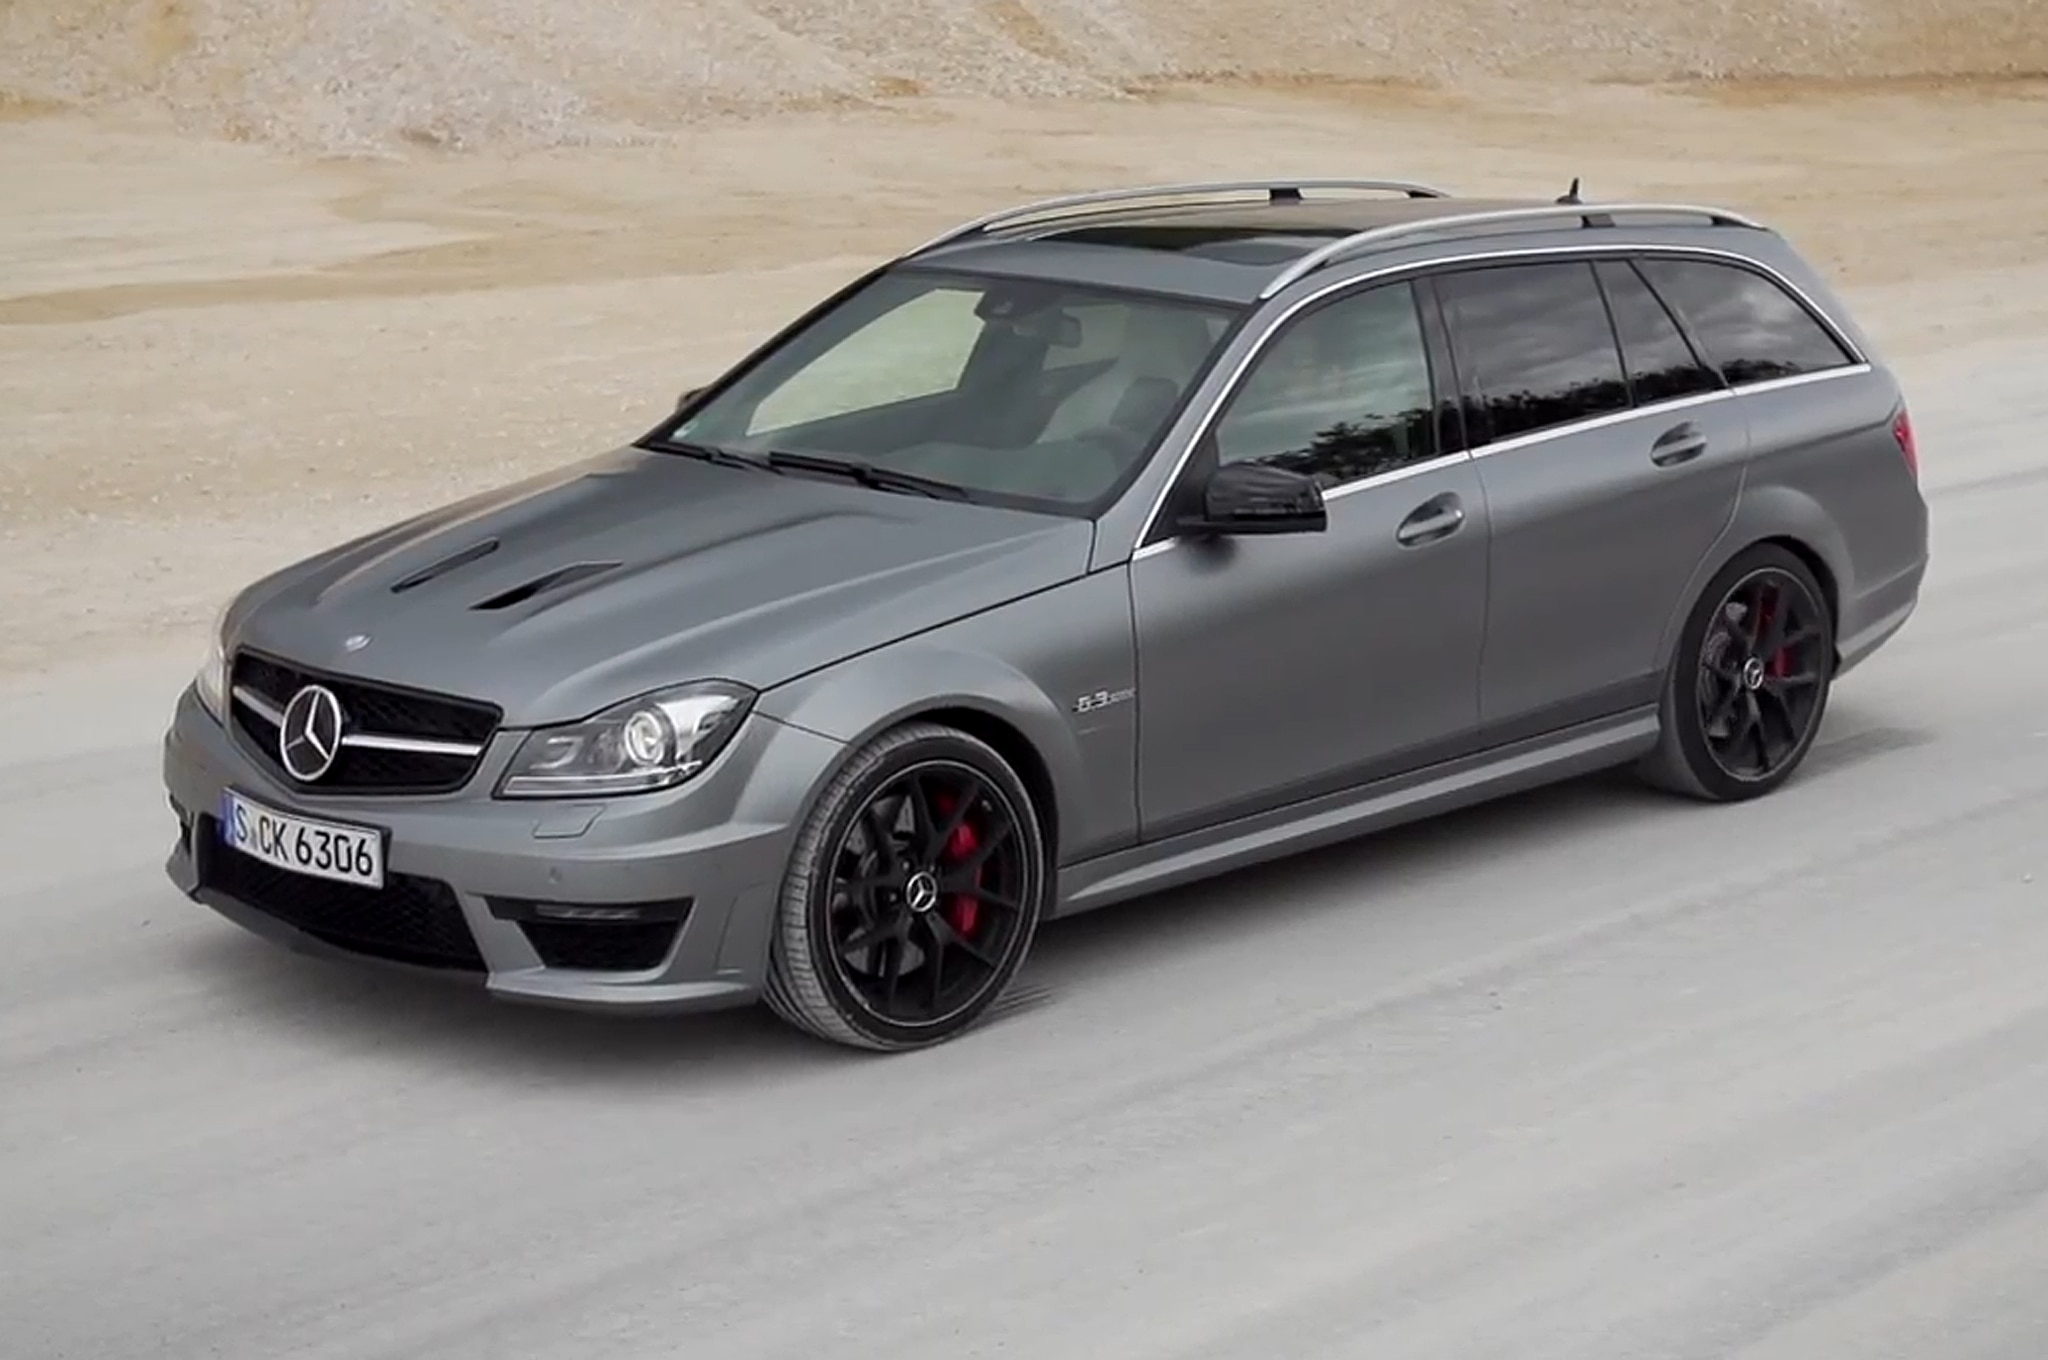 Feature Flick: 2014 Mercedes-Benz C63 AMG Edition 507 Wagon